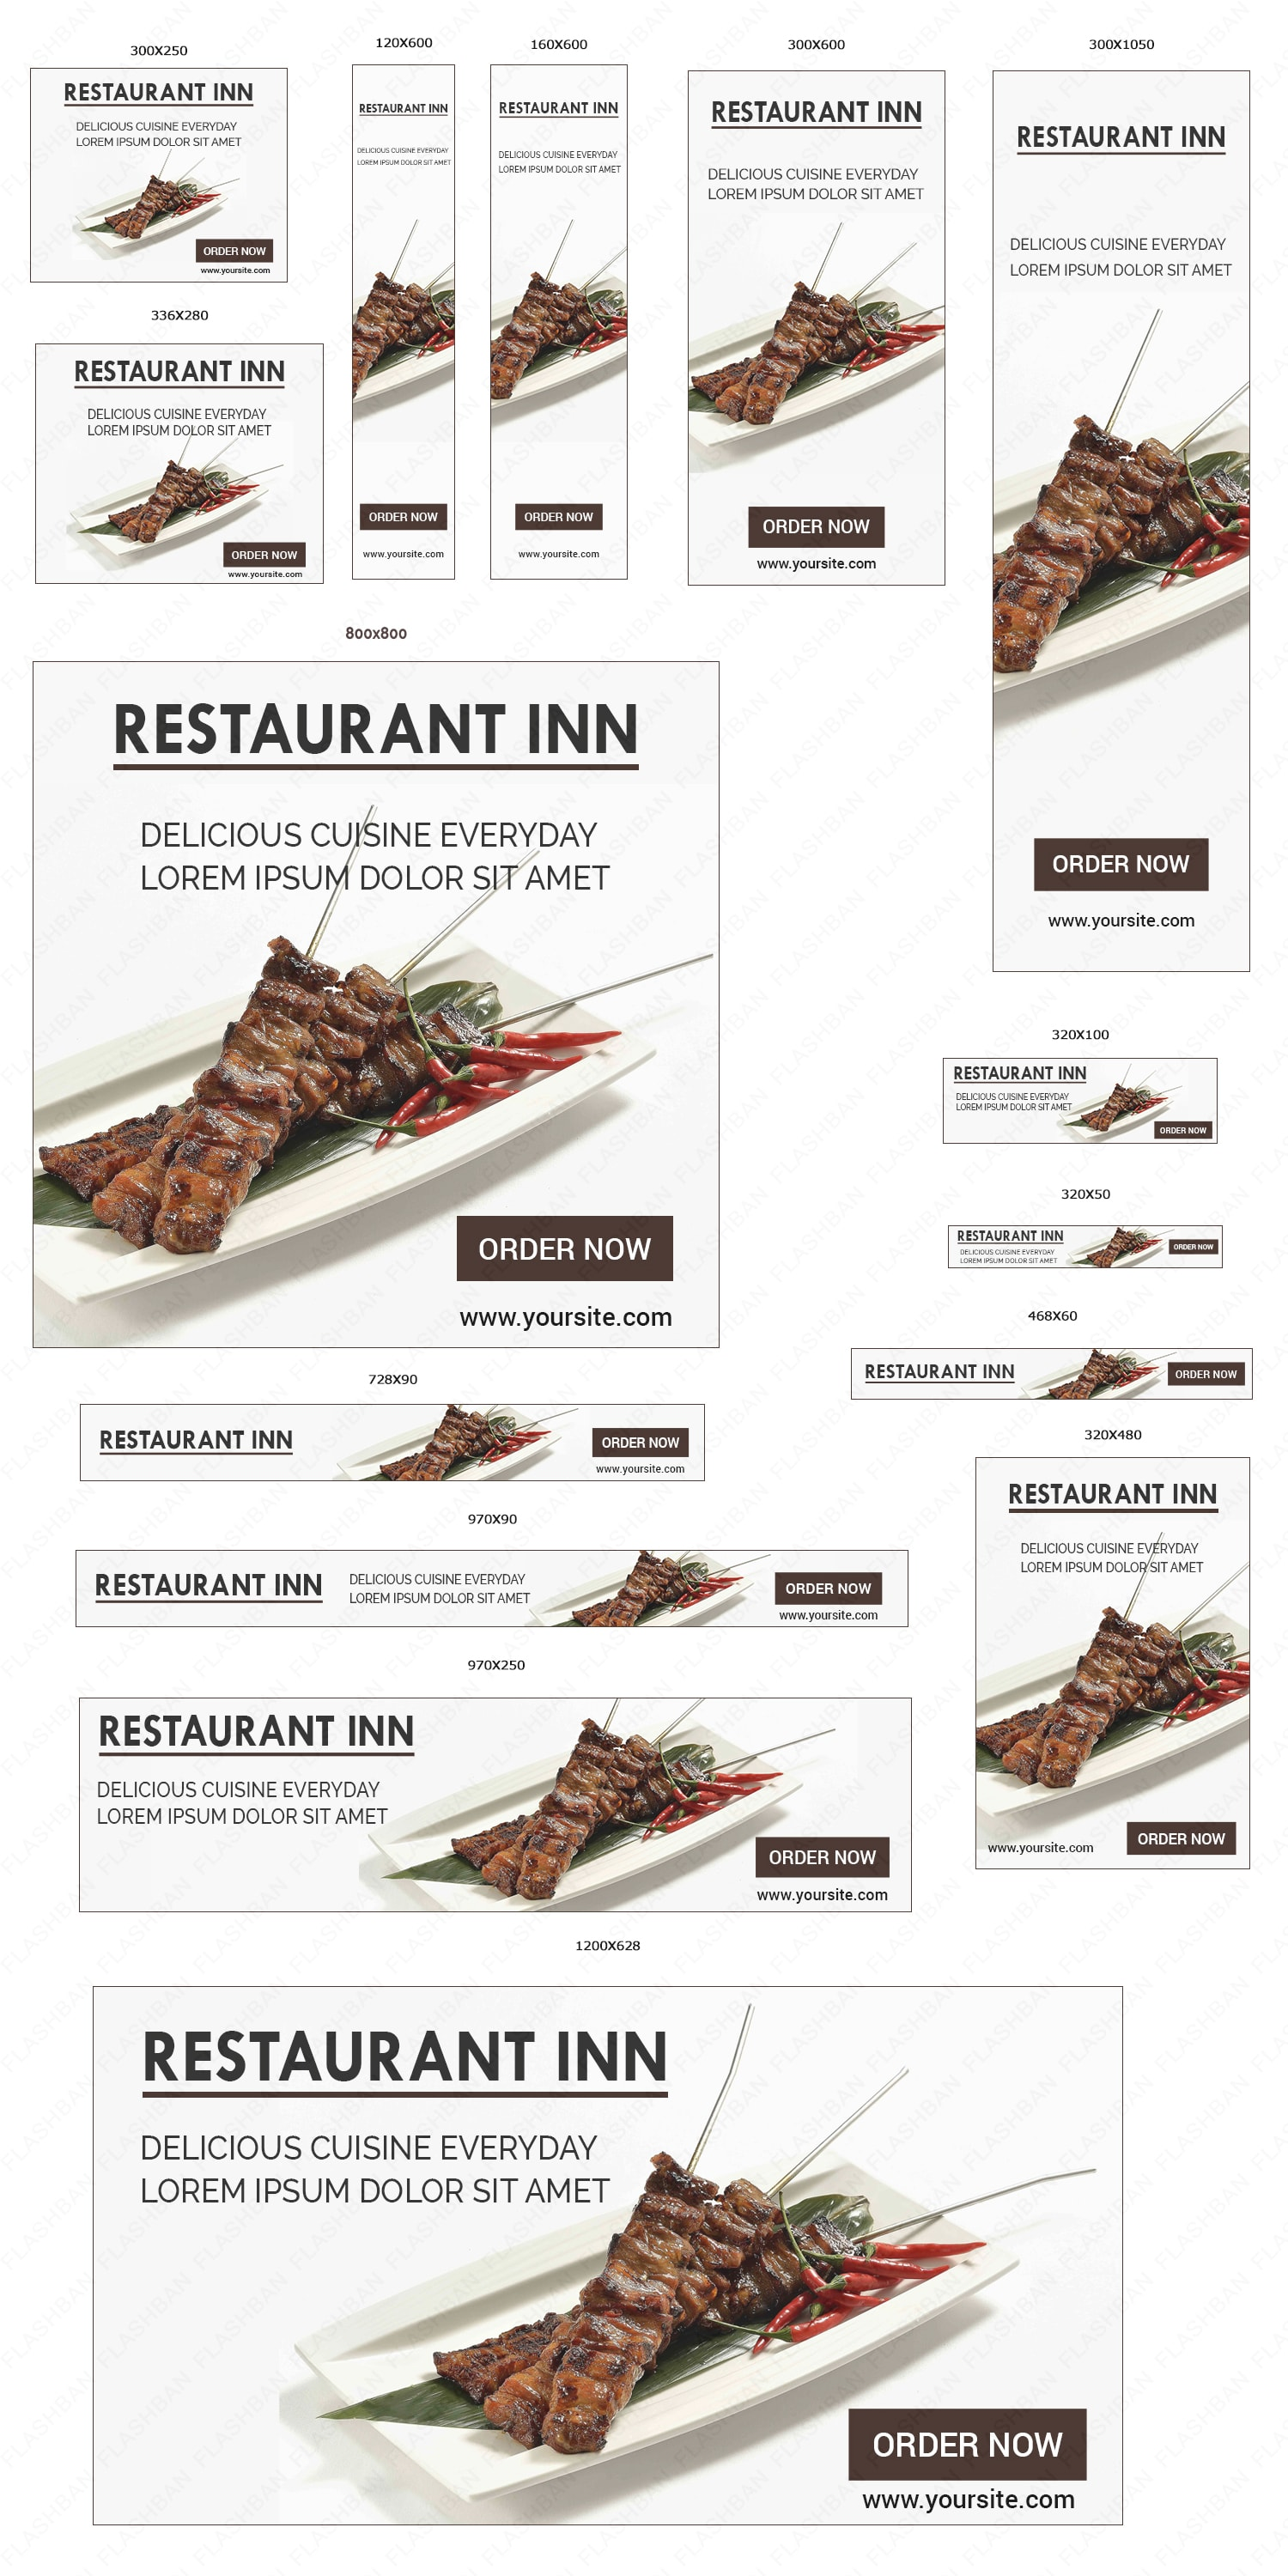 Ad Banner of Restaurant